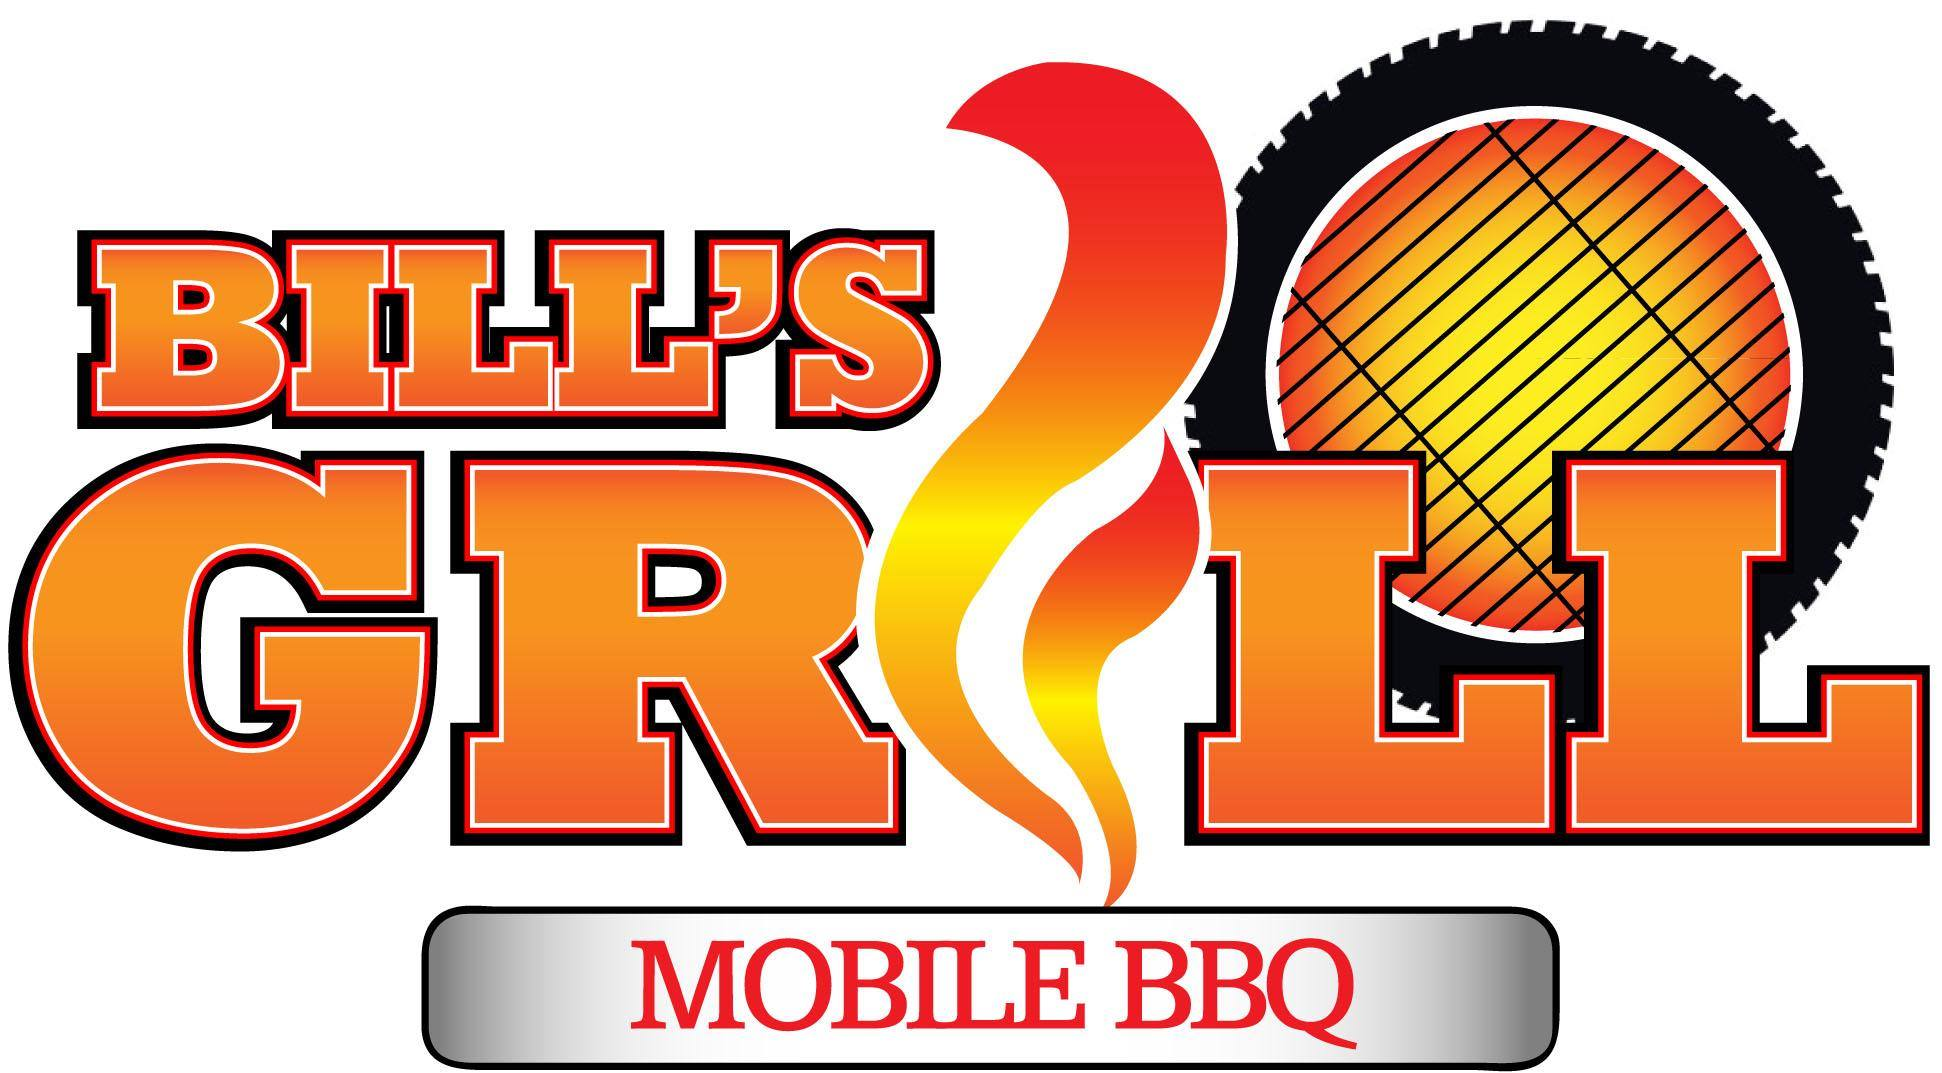 Bill's Grill Mobile BBQ